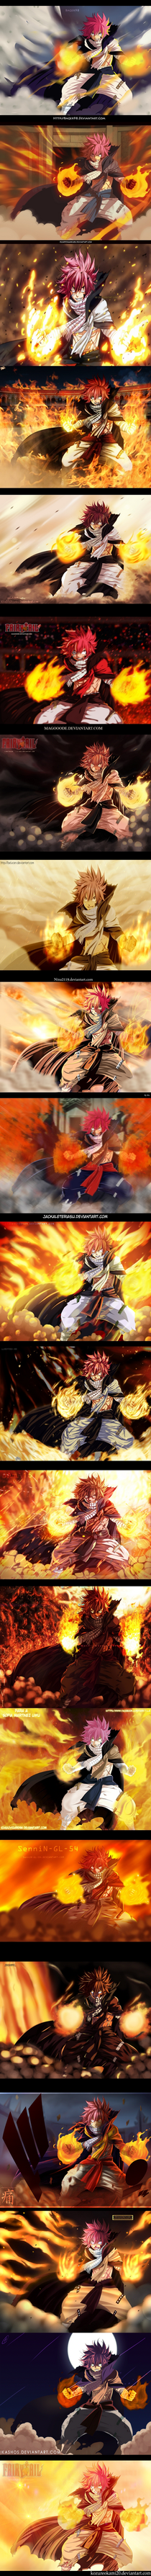 Fairy Tail 418 1 Year time-skip Natsu by Grimm6Jack